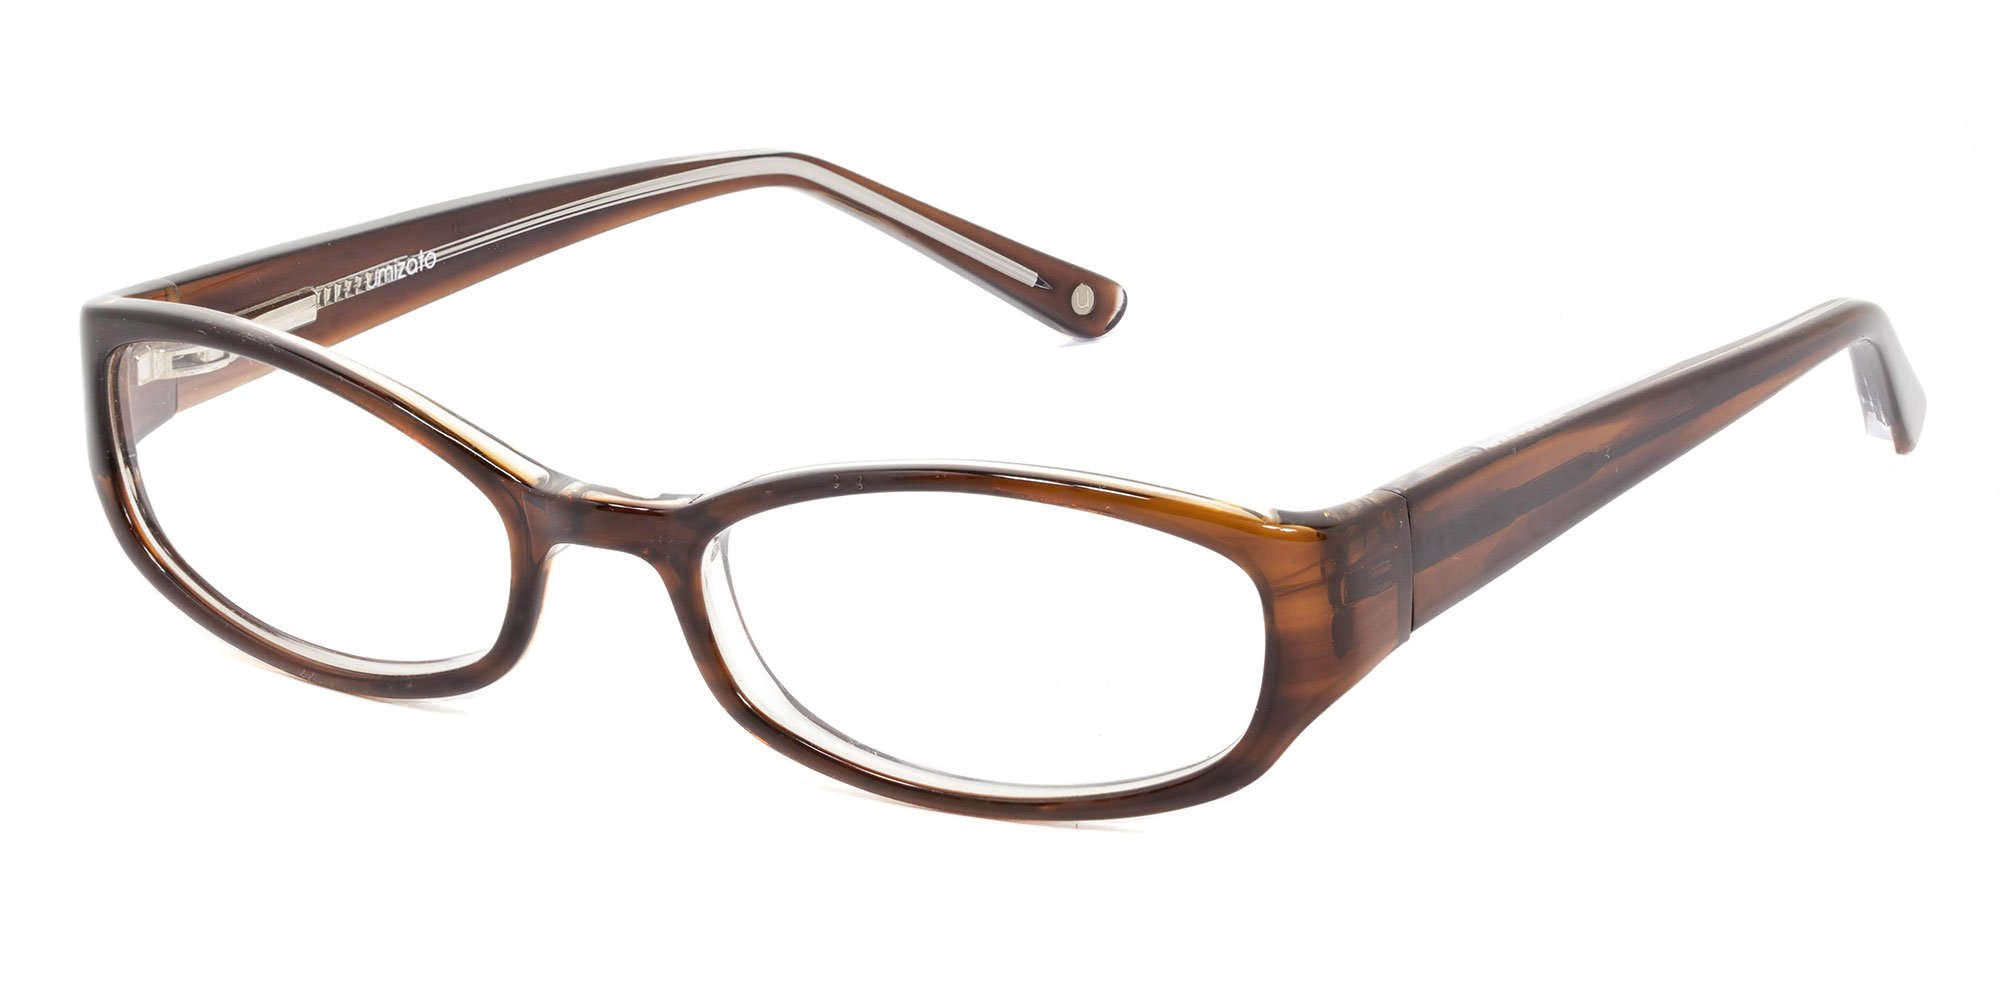 UMIZATO Prescription Glasses Frames For Women, Designer Eyeglasses (ALEXANDRIA Sienna)